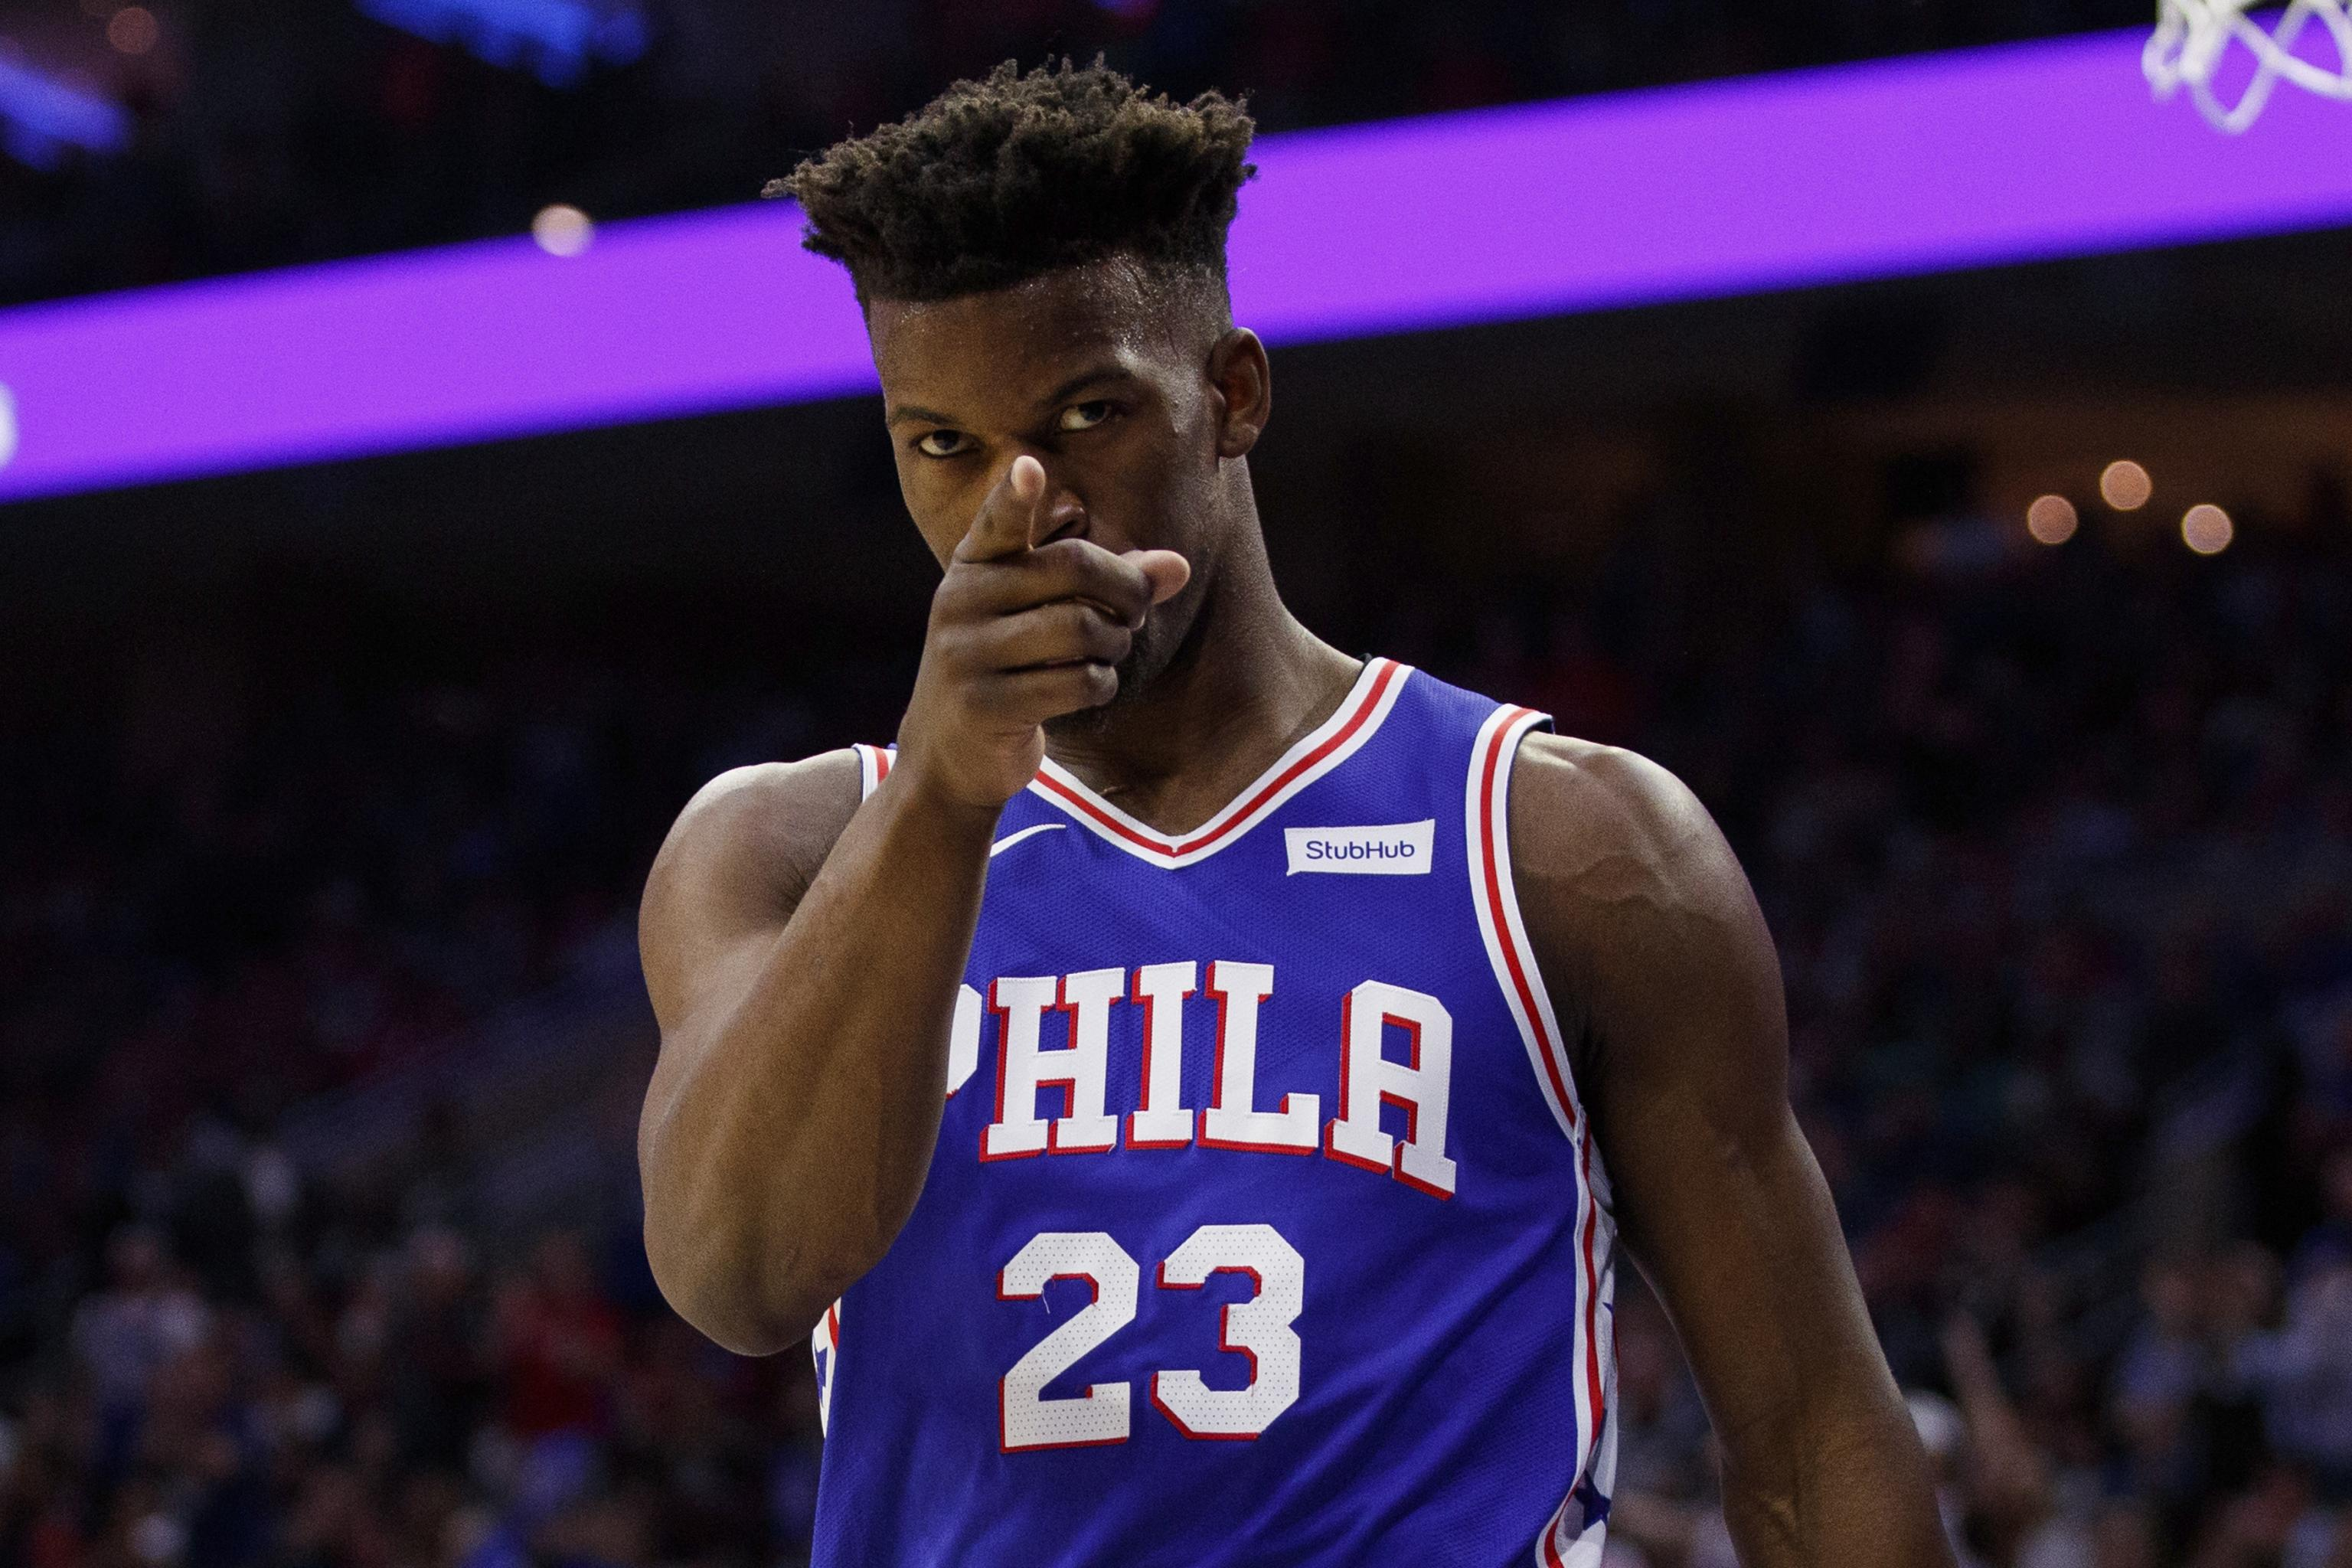 Windhorst Jimmy Butler To Get Max Contract Offer From 76ers Rival Execs Expect Bleacher Report Latest News Videos And Highlights